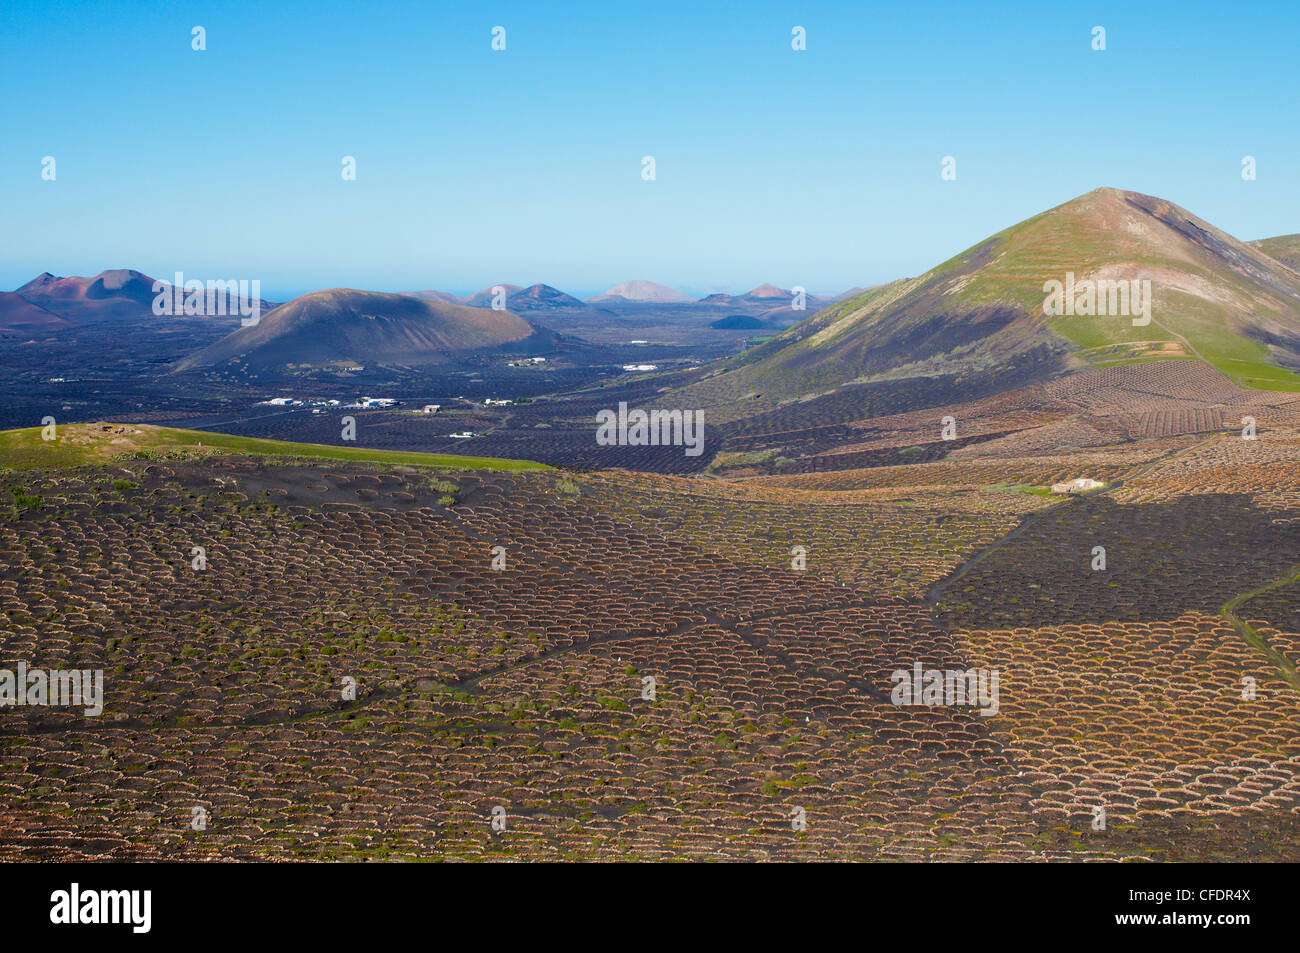 Vineyard on the lava, Biosphere Reserve, Lanzarote, Canary Islands, Spain, Europe - Stock Image